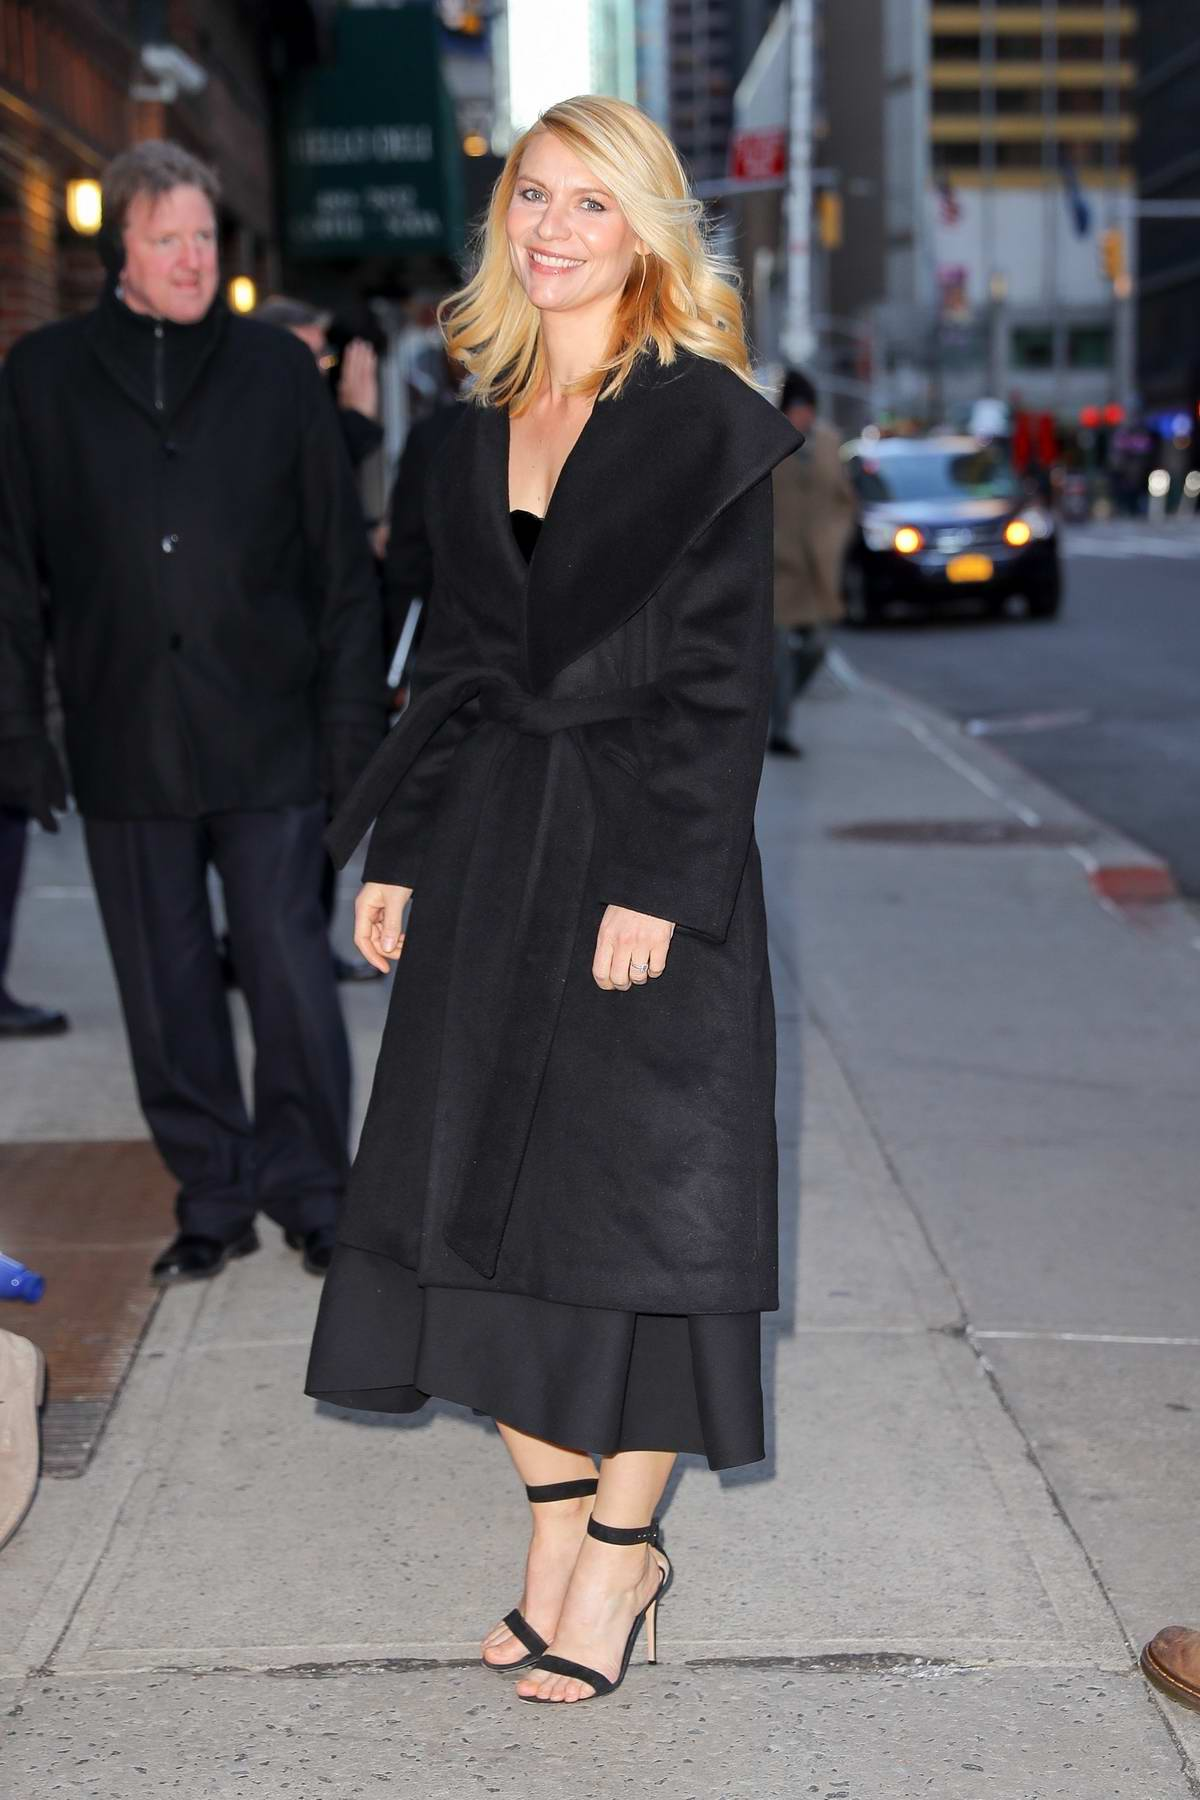 Claire Danes keeps it chic in all black at 'The Late Show with Stephen Colbert' in New York City